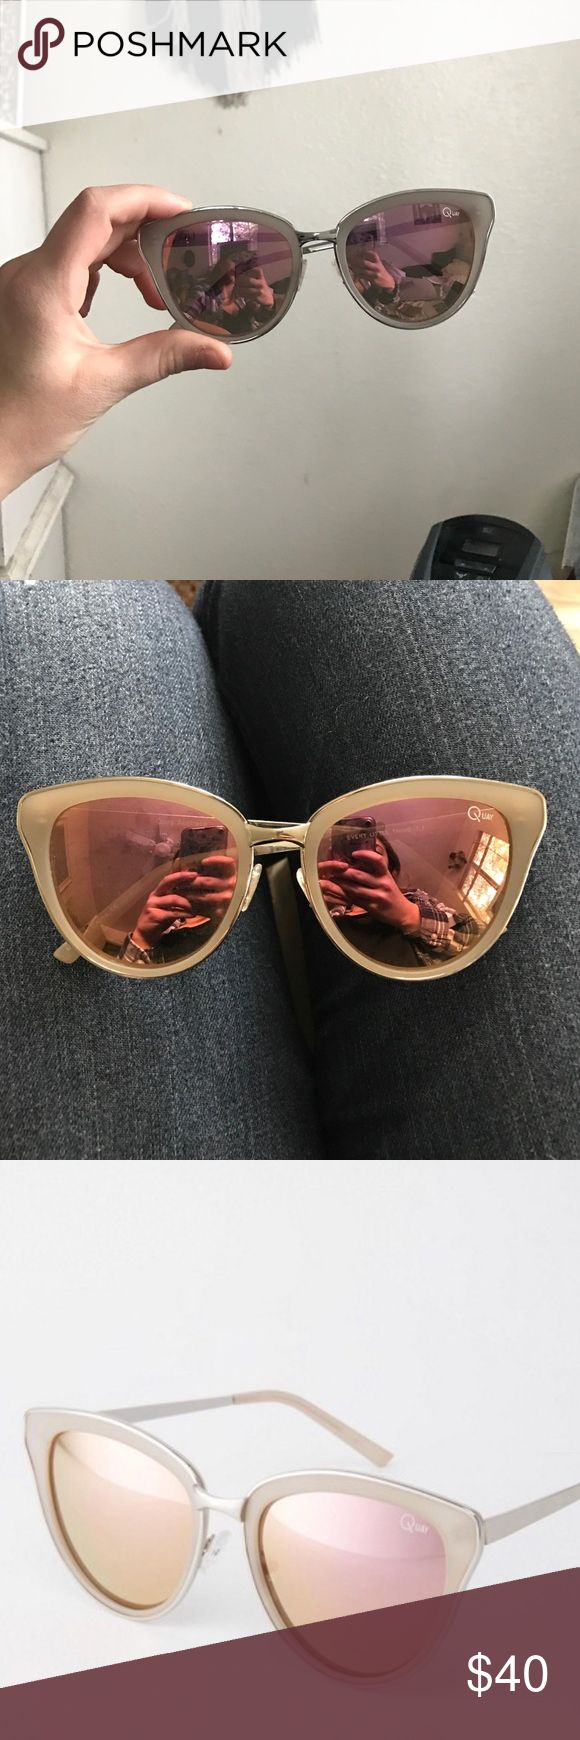 Quay pink Australian sunglasses Pink mirrored sunglasses with gray and silver frame Quay Australia Accessories Sunglasses